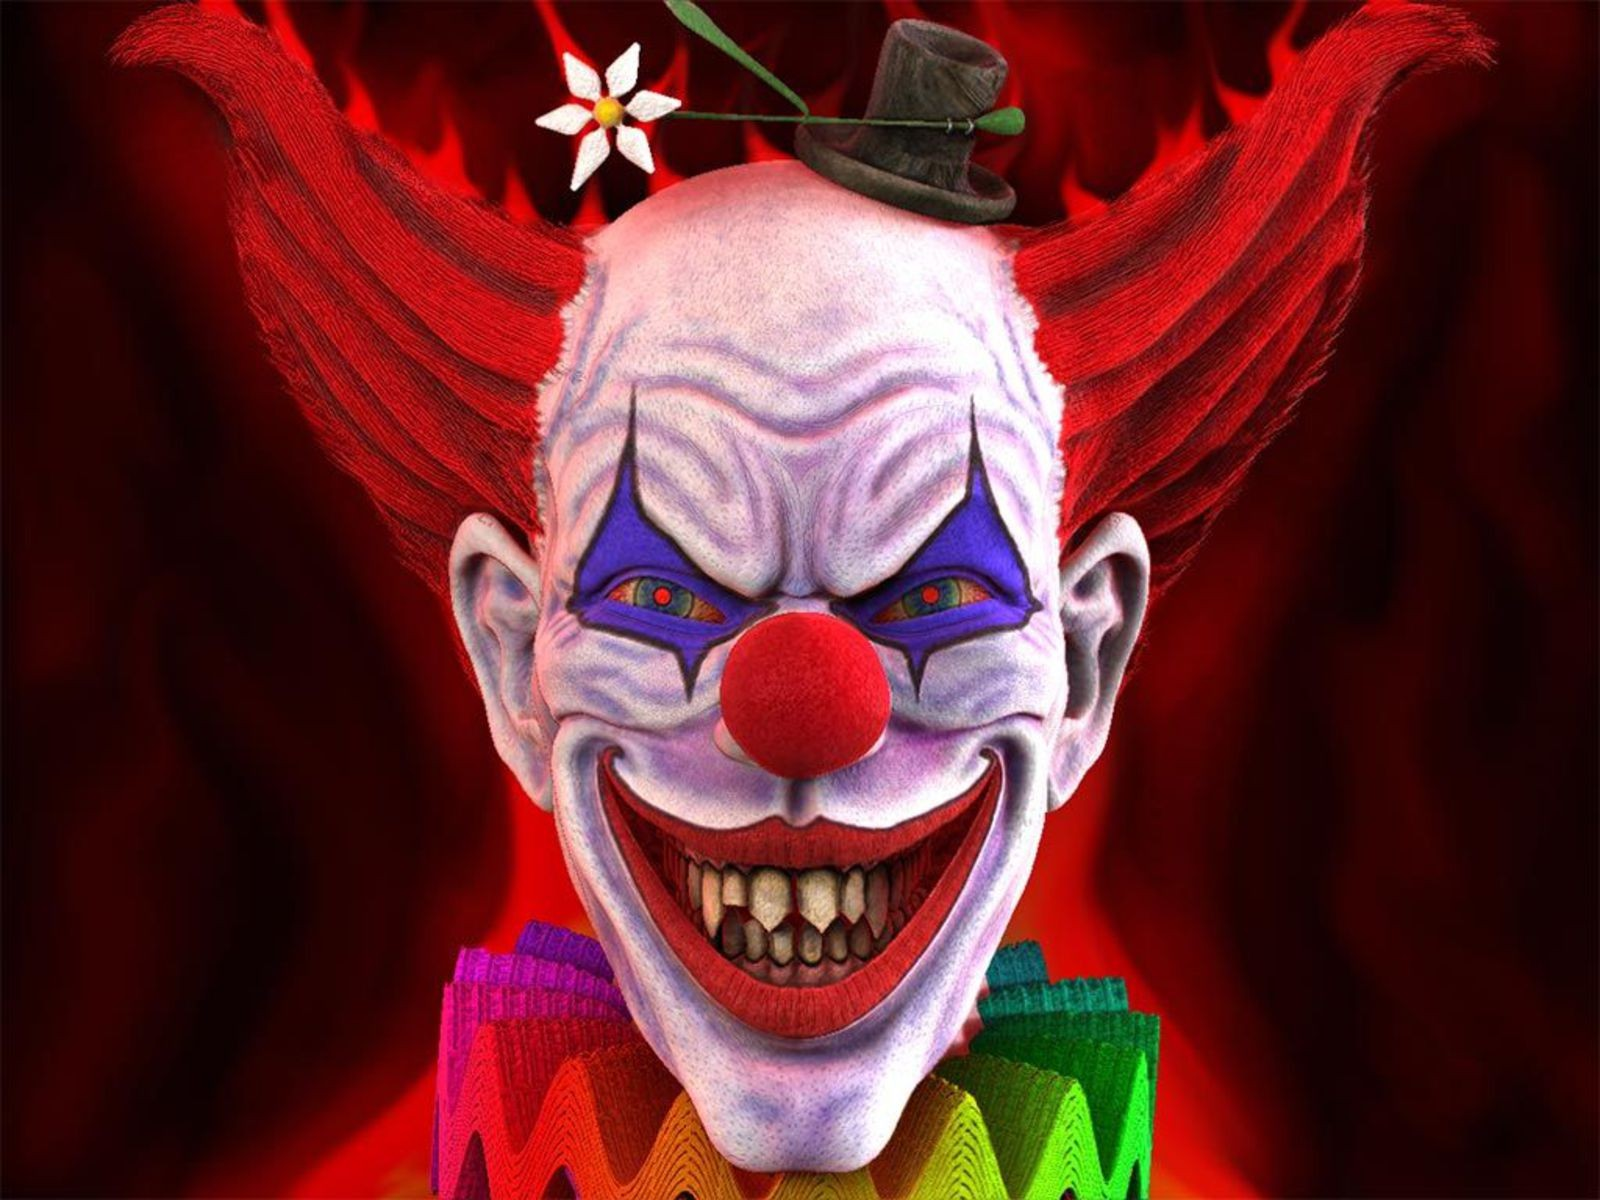 evil clown | Mundabor's Blog